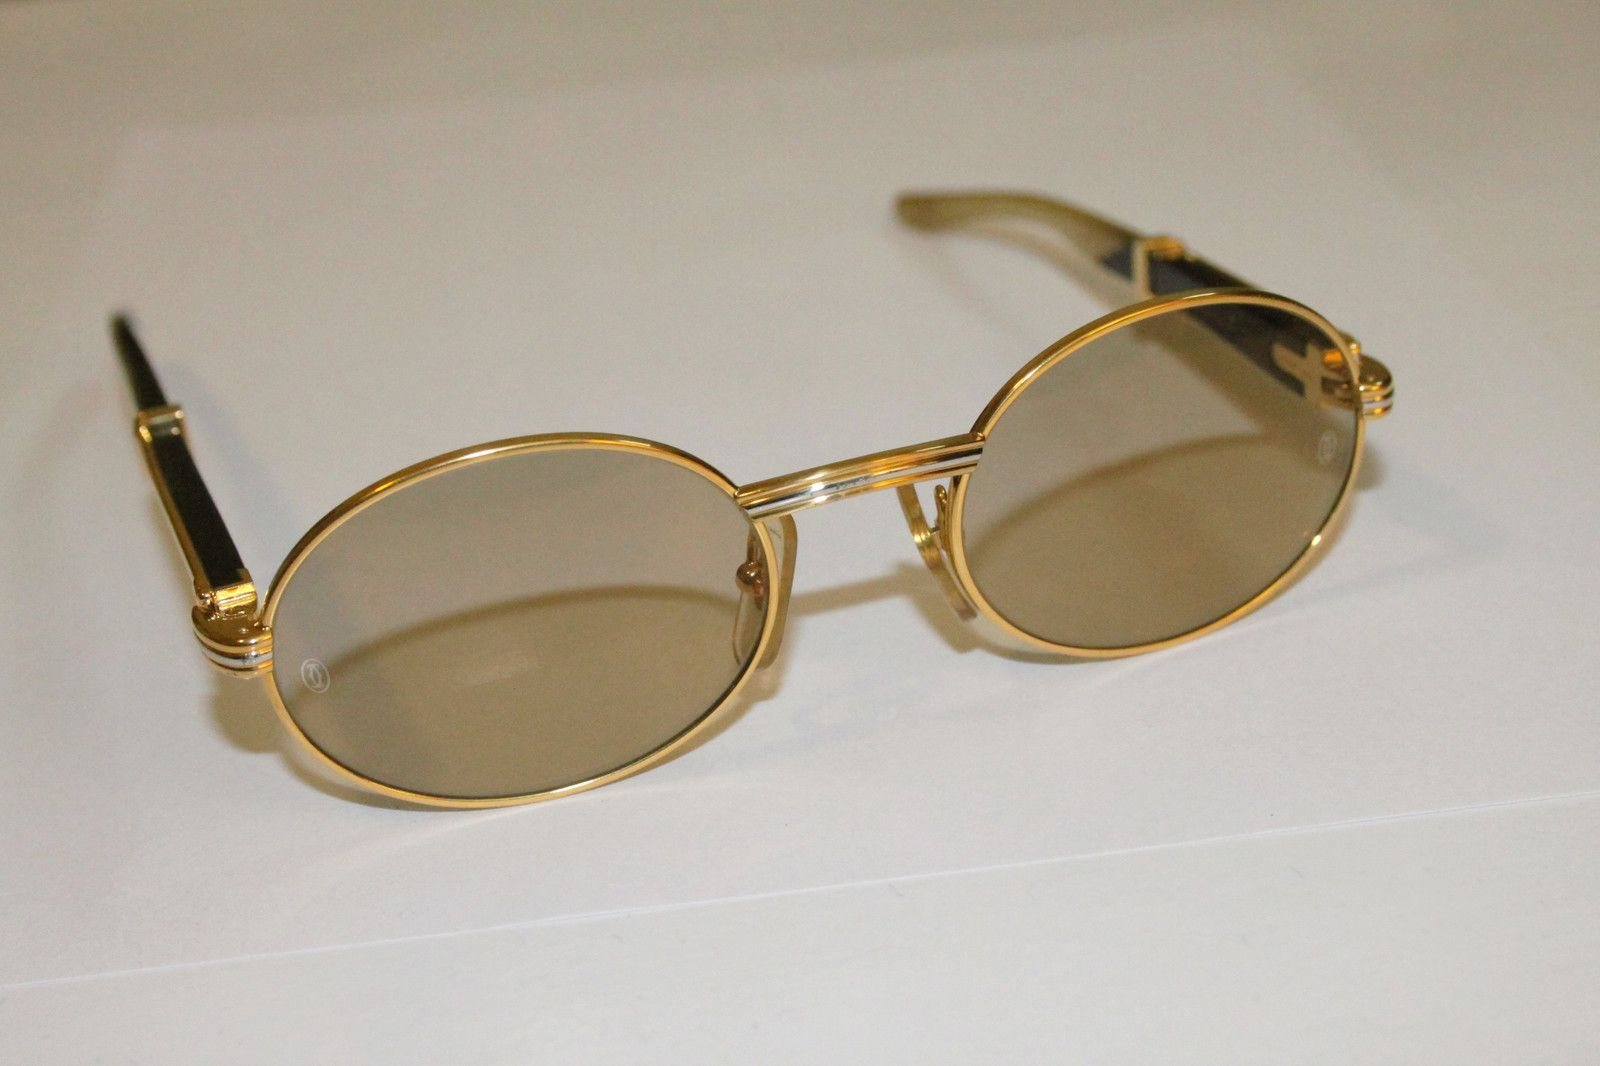 cead76d5883d Cartier Gold and Wood Sunglasses